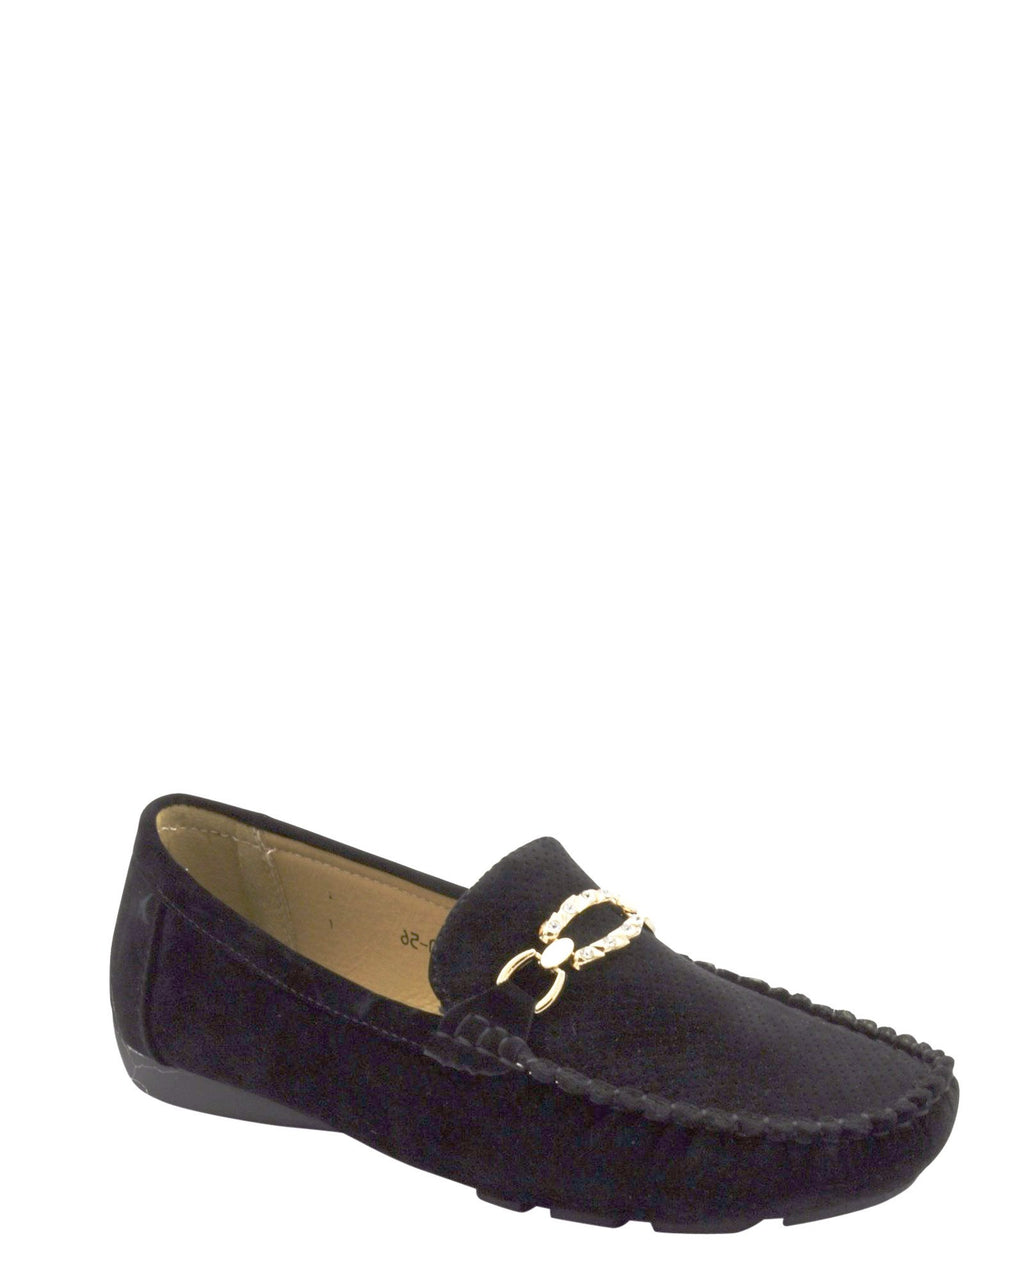 Women's Suede Buckle Loafer